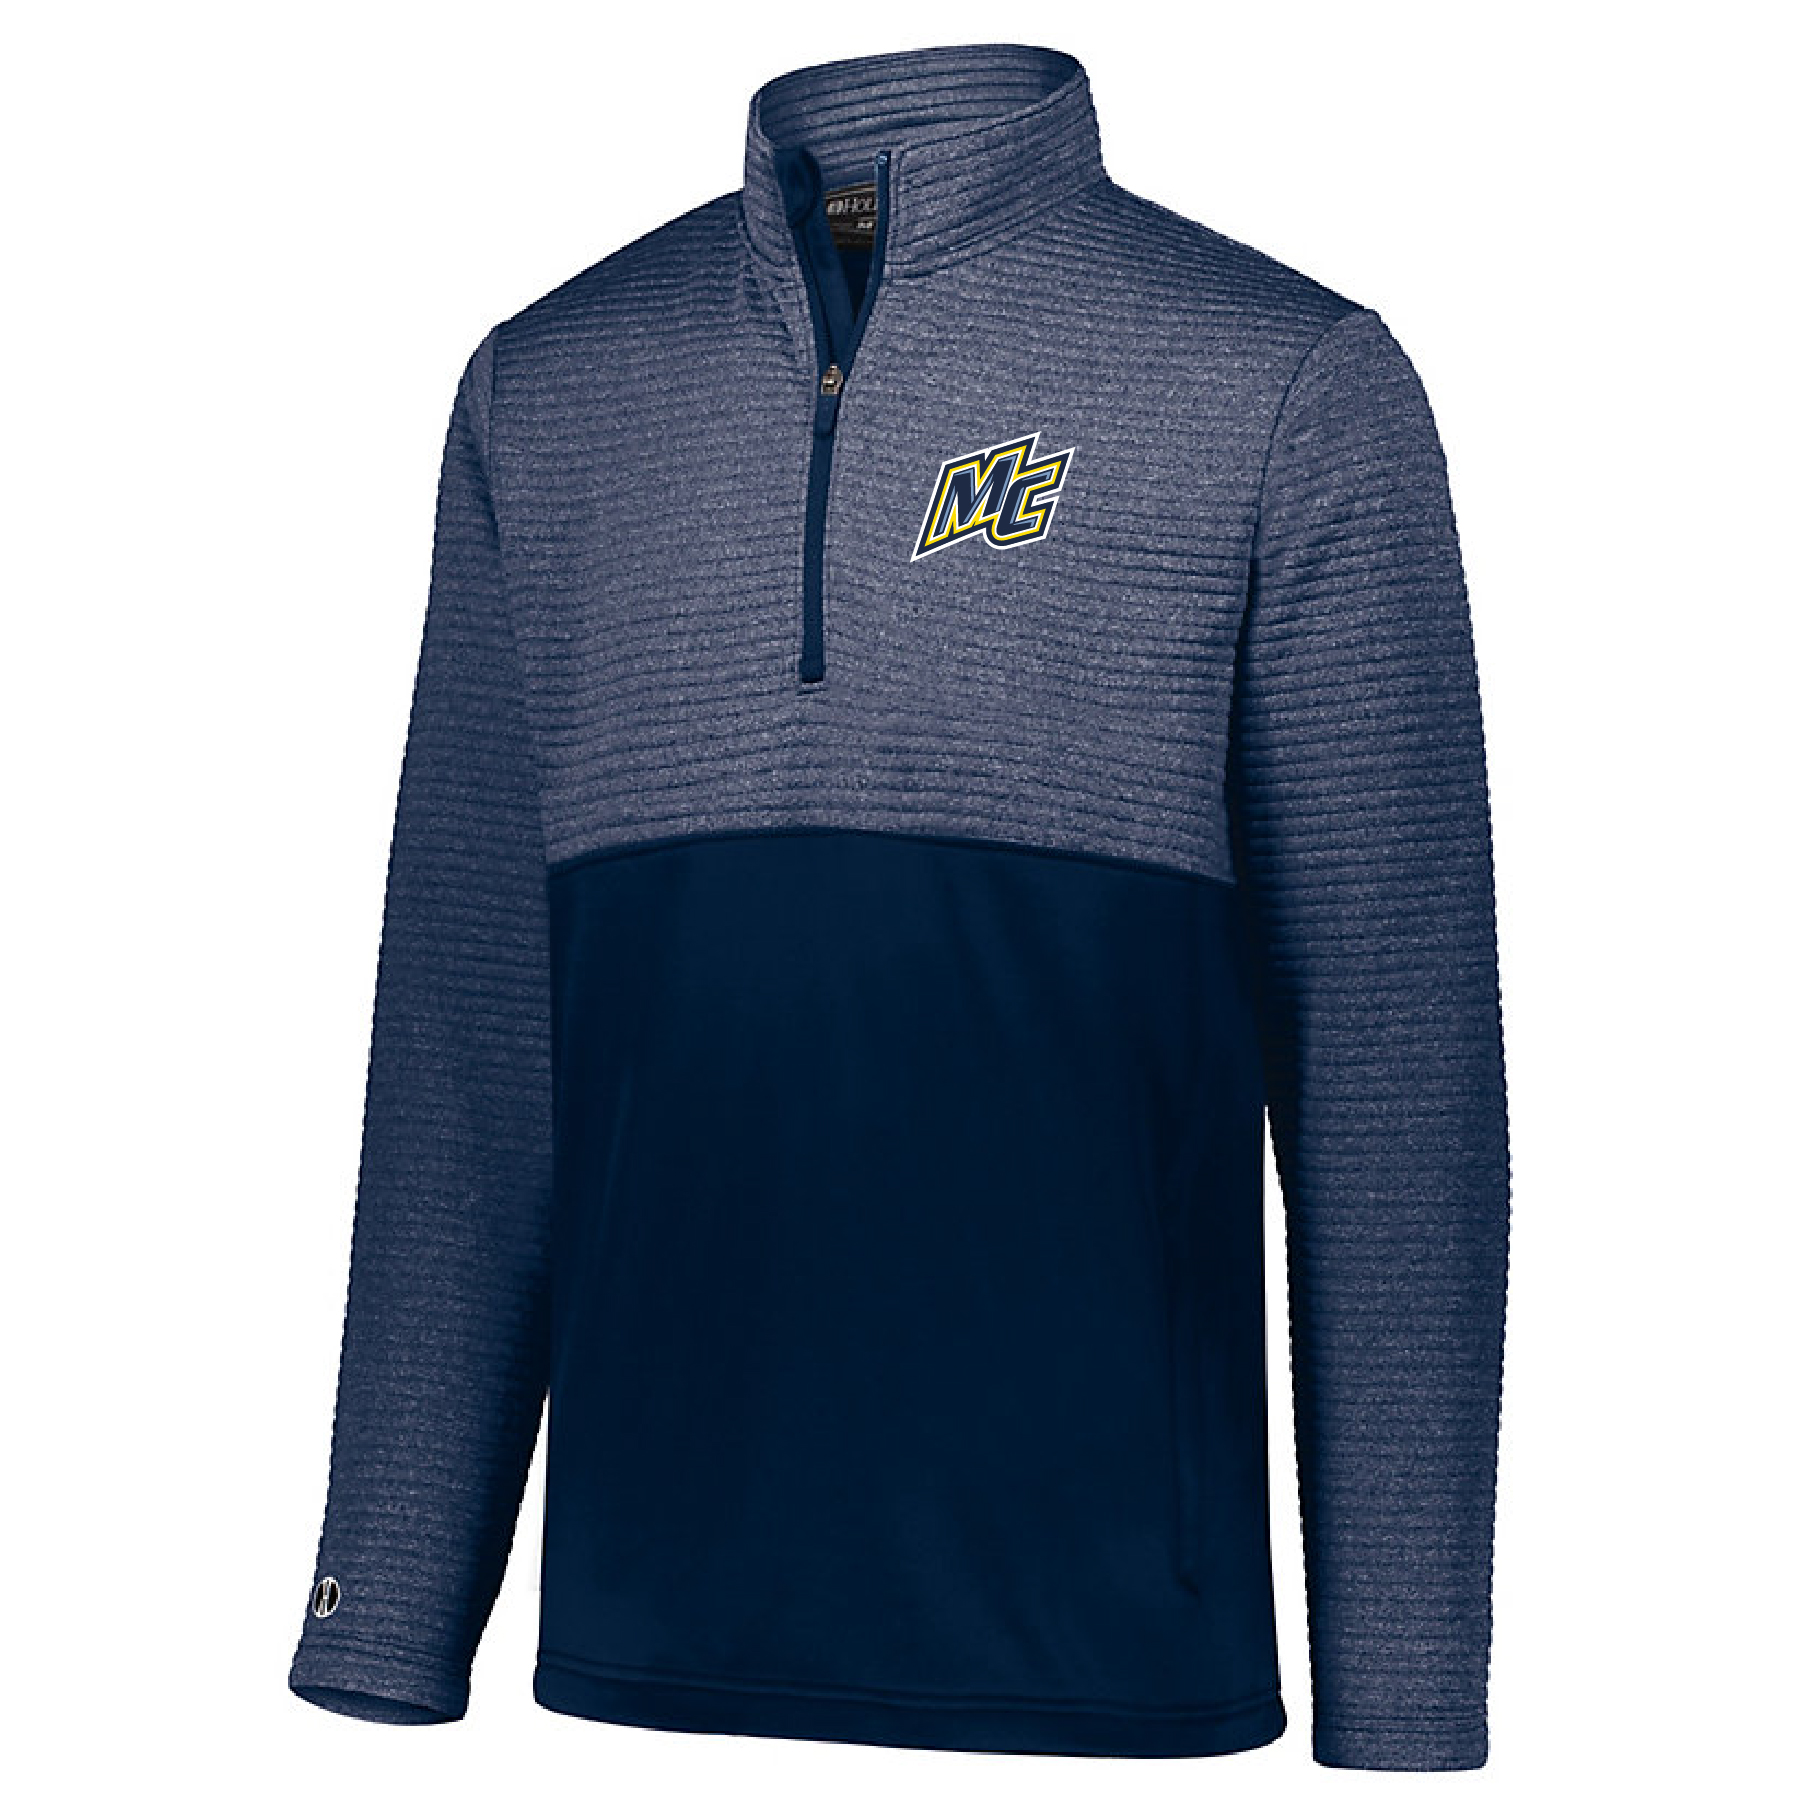 Heather Navy 1/4 Zip